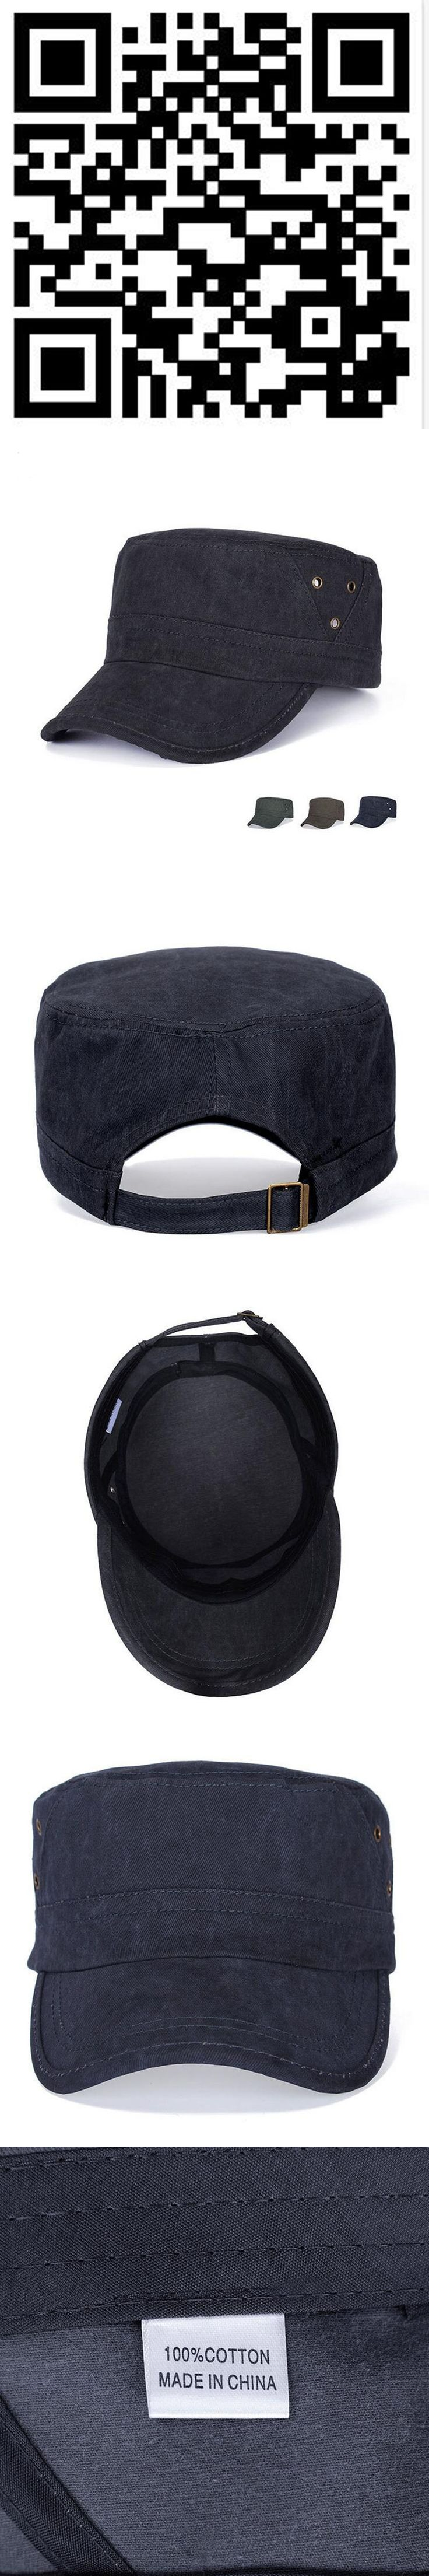 fashion women military hats 2015 new style cotton 4 colors solid caps unisex summer men cap spring army caps Outdoor driver cap